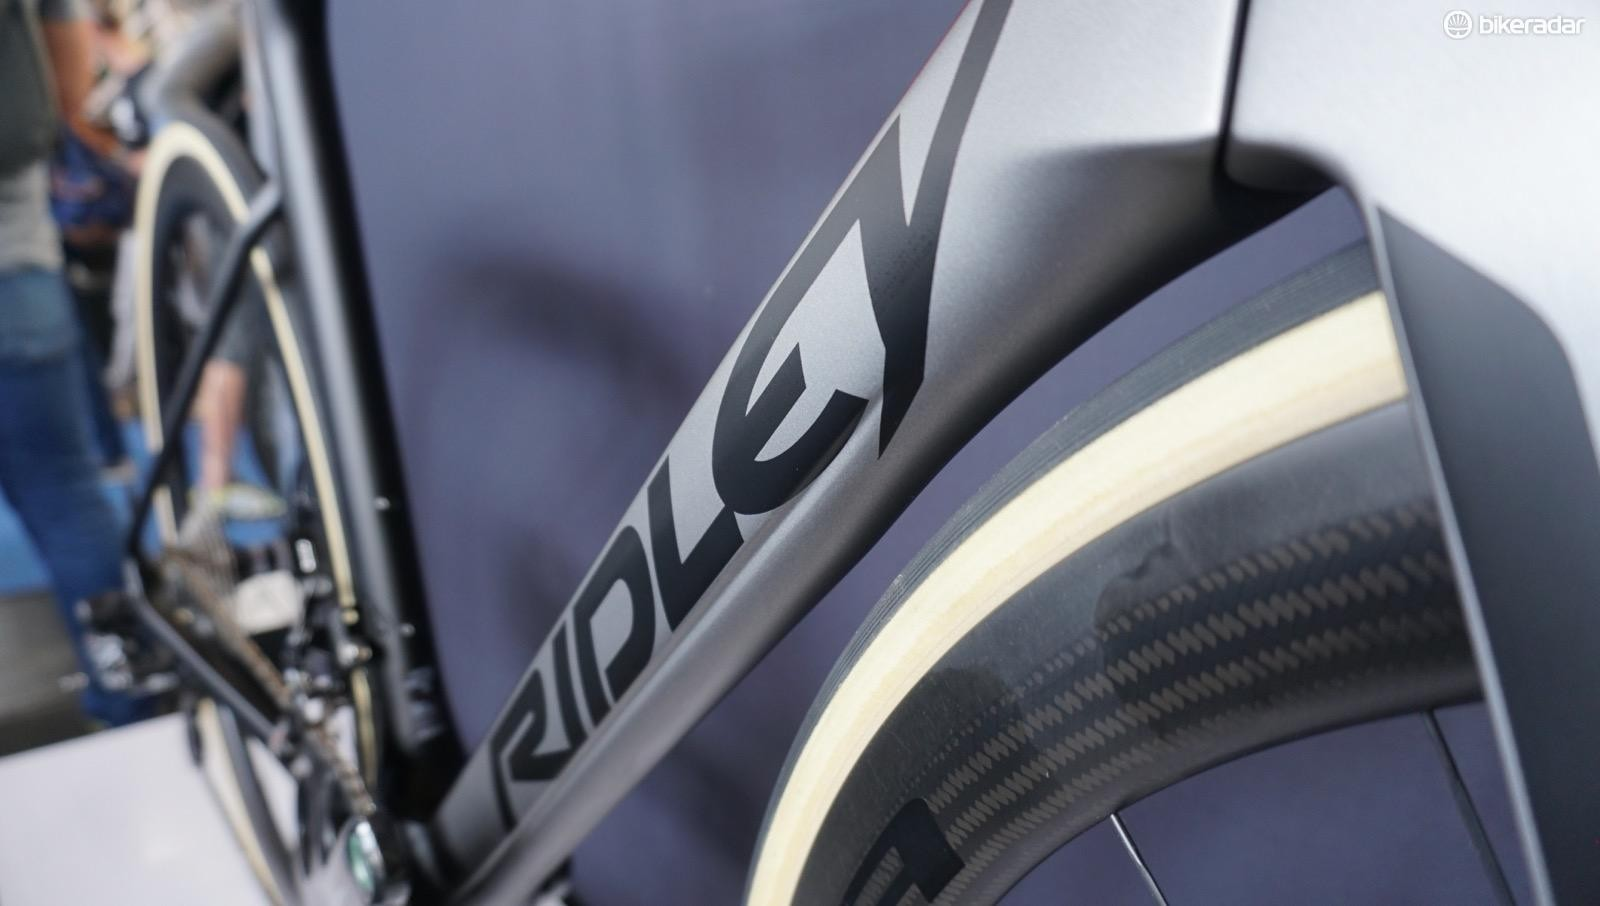 Ridley has used what it calls F-Surface treatment before on the down tube and seatpost, but the new bike has more extensive channeling